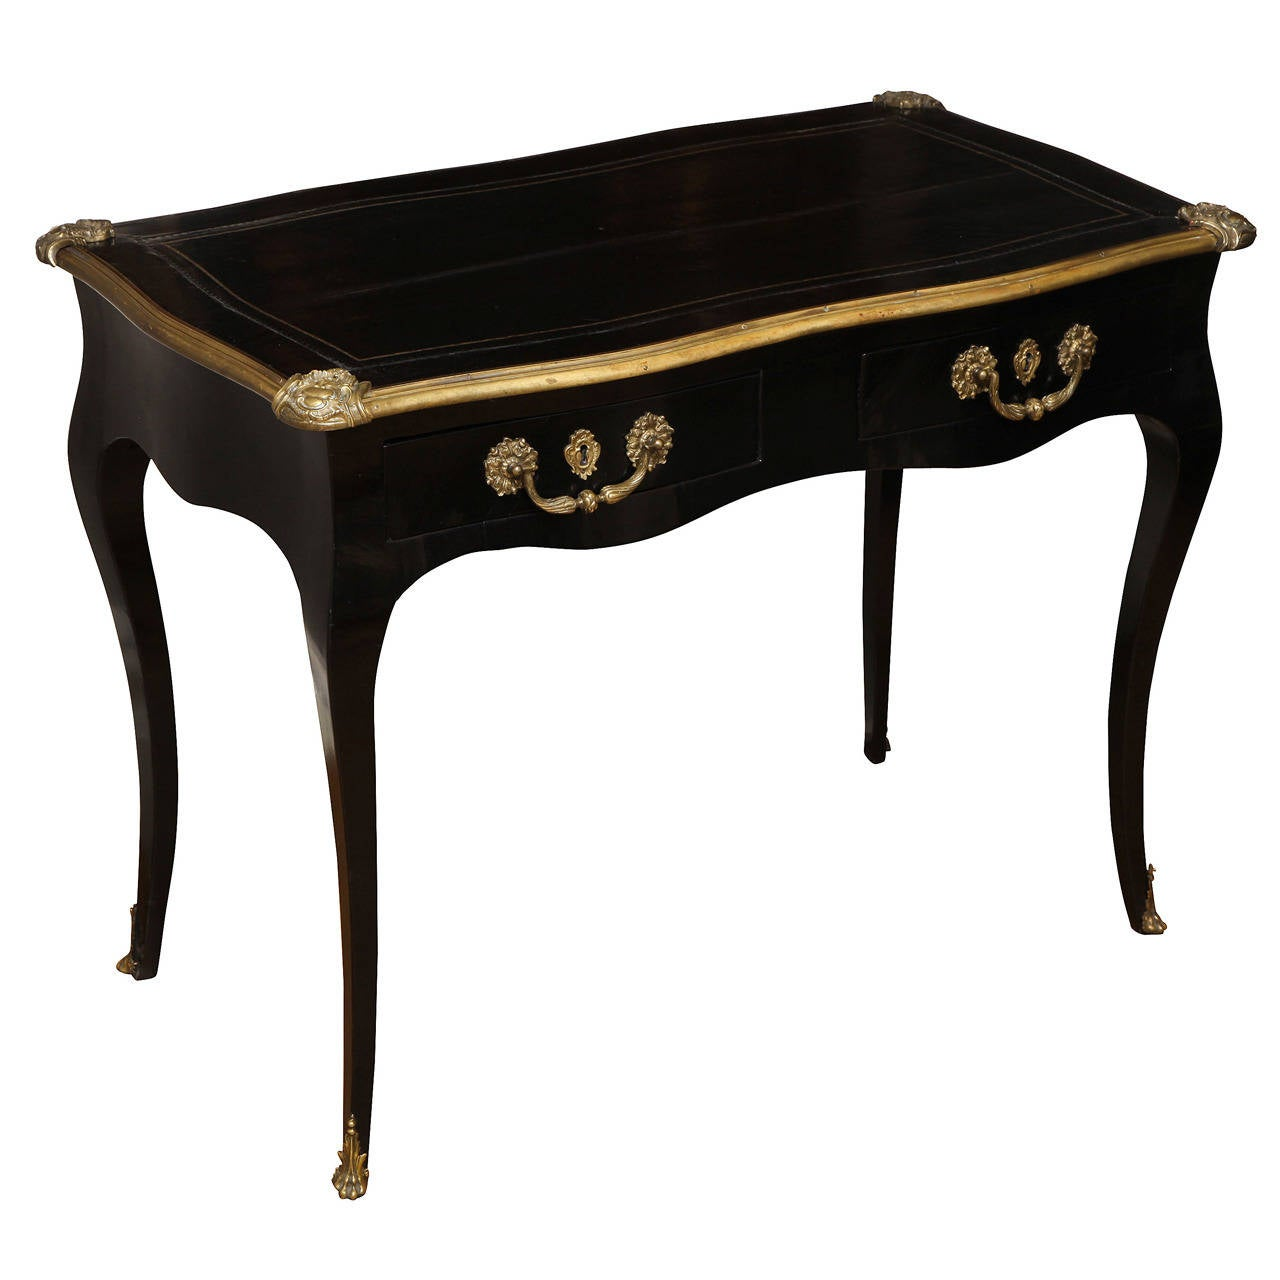 Ebonized louis xv style side table at 1stdibs - Table style louis xv ...